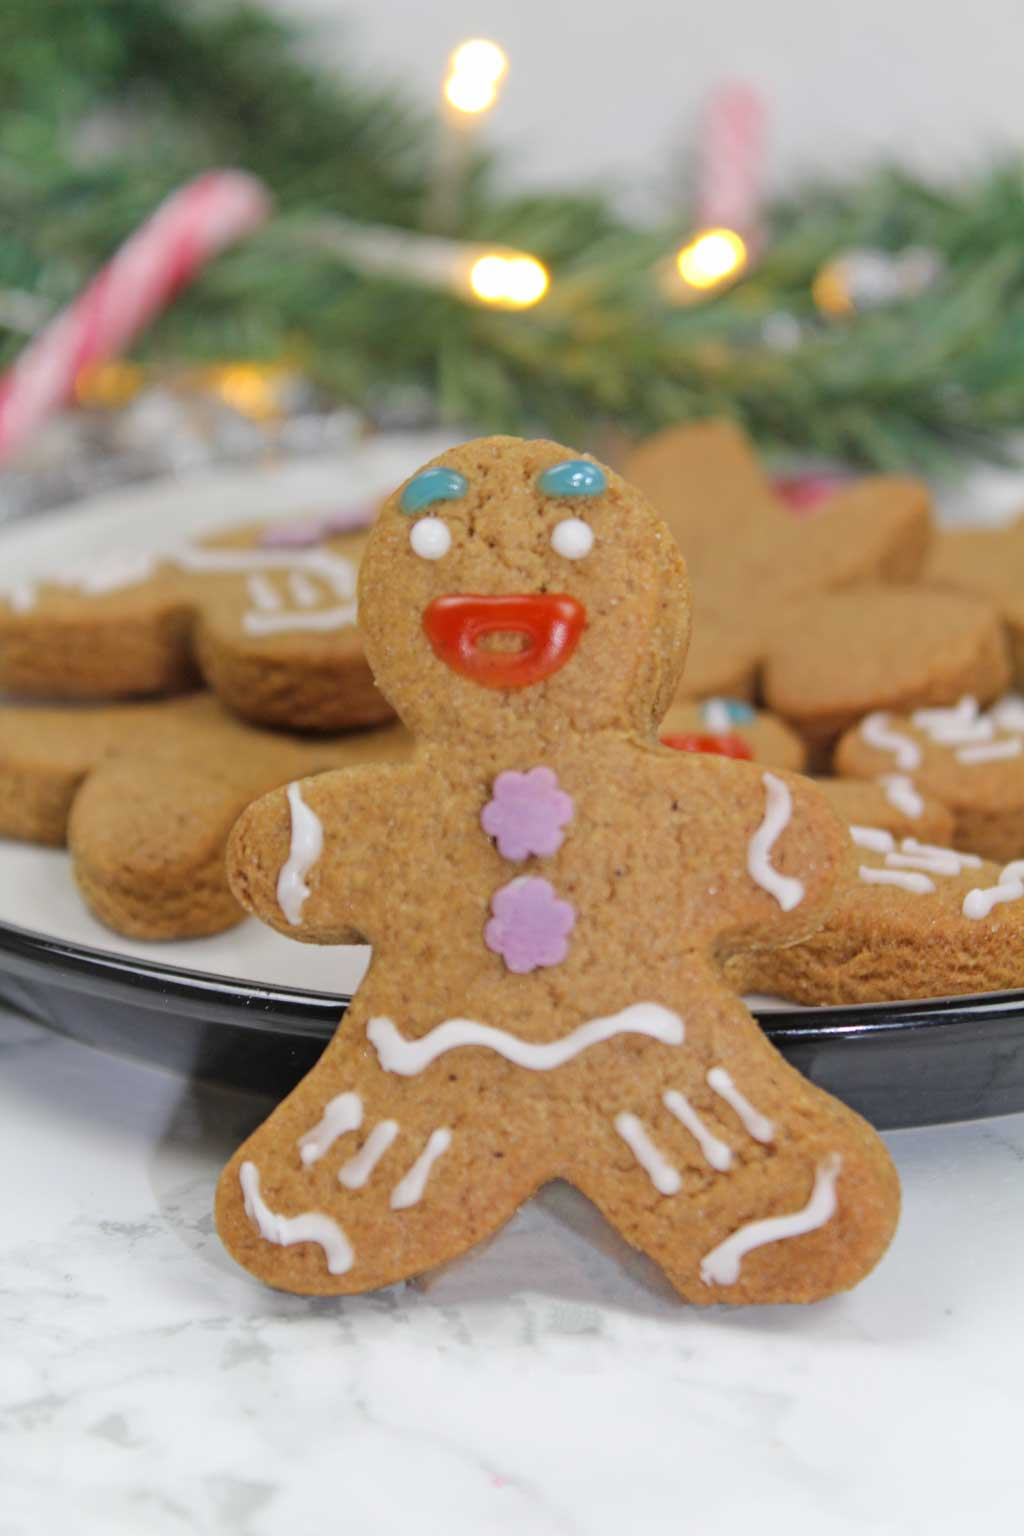 gingerbread man standing in front of a plate of gingerbread men